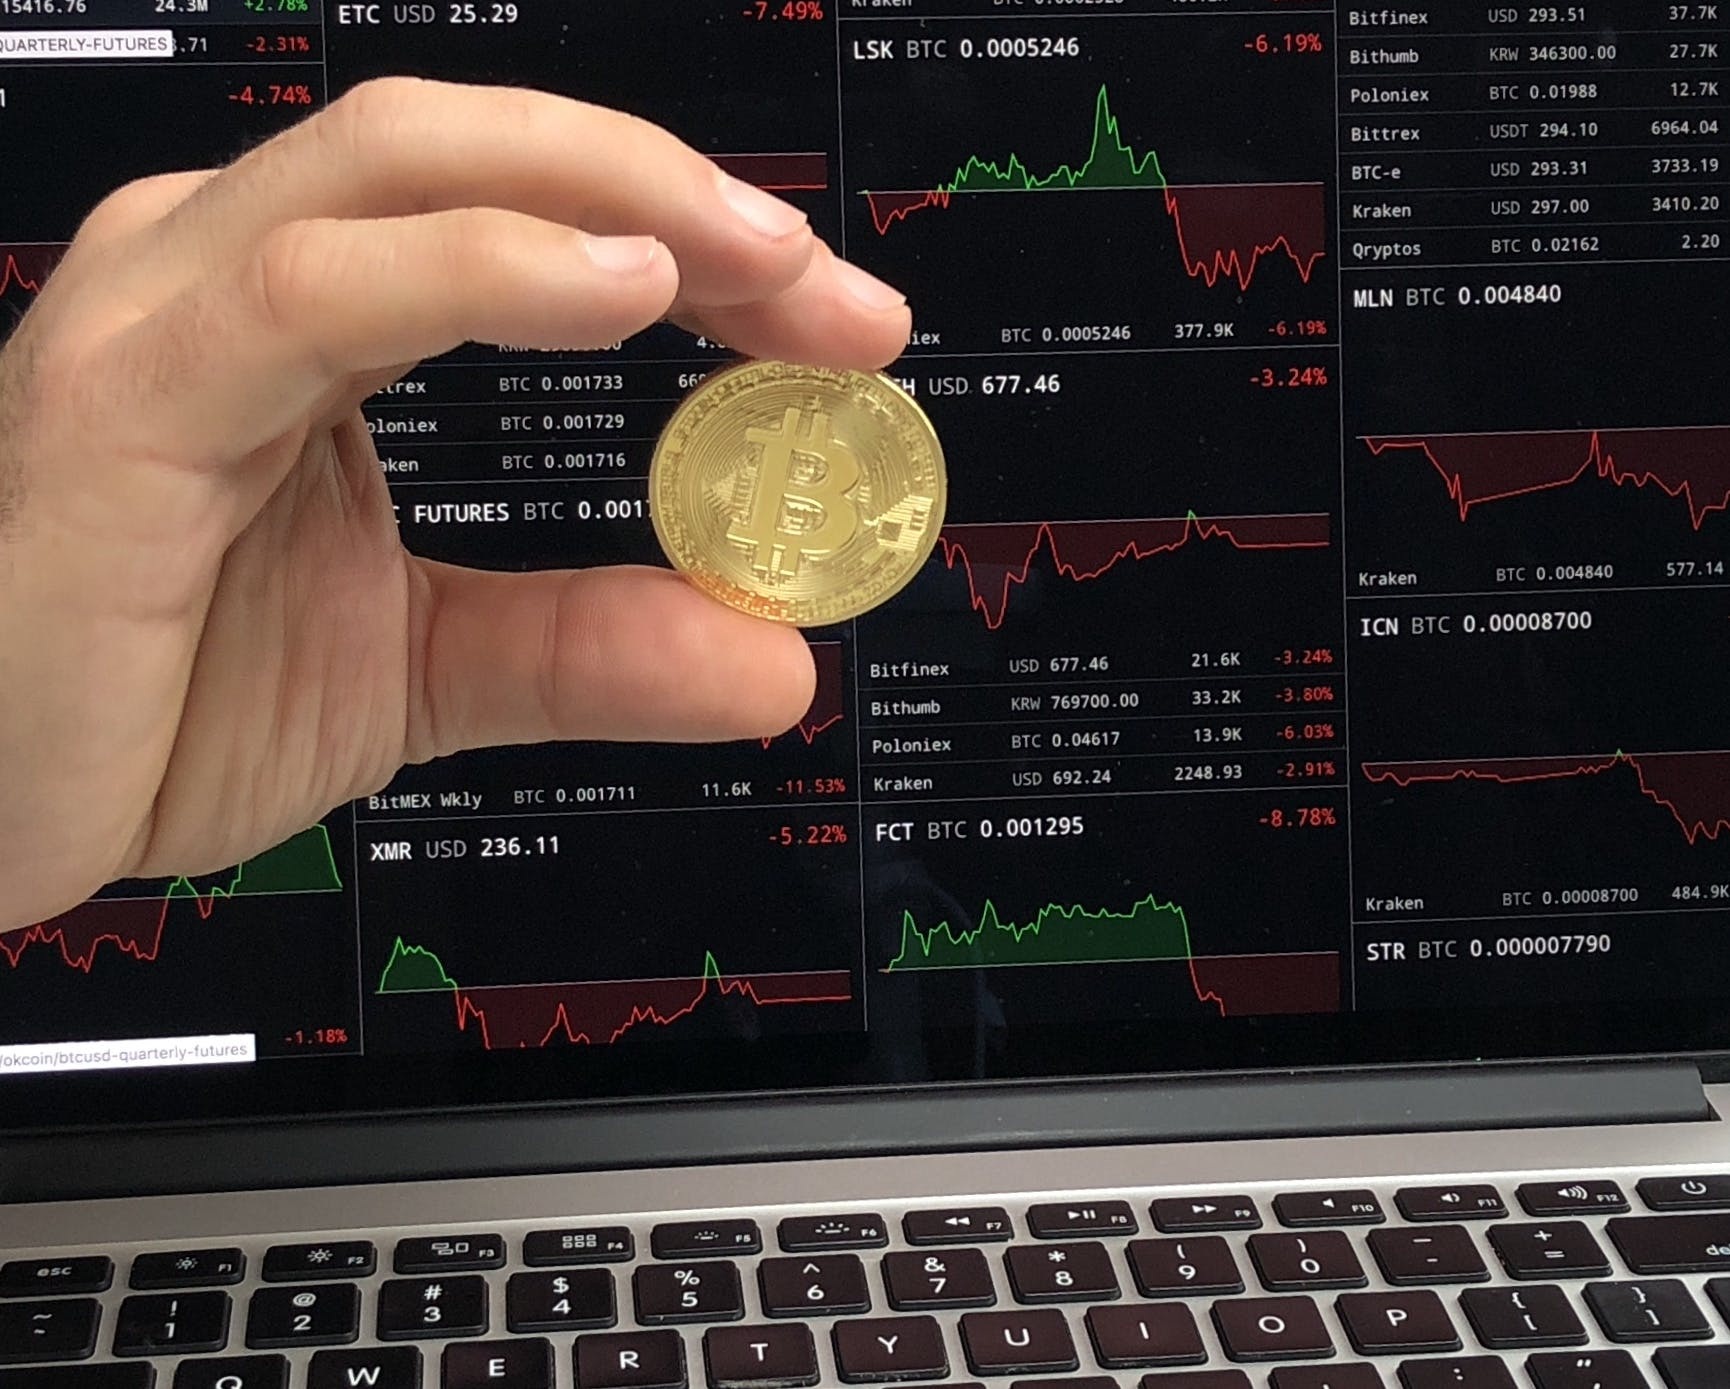 Free stock photo of Hand holding cryptocurrency